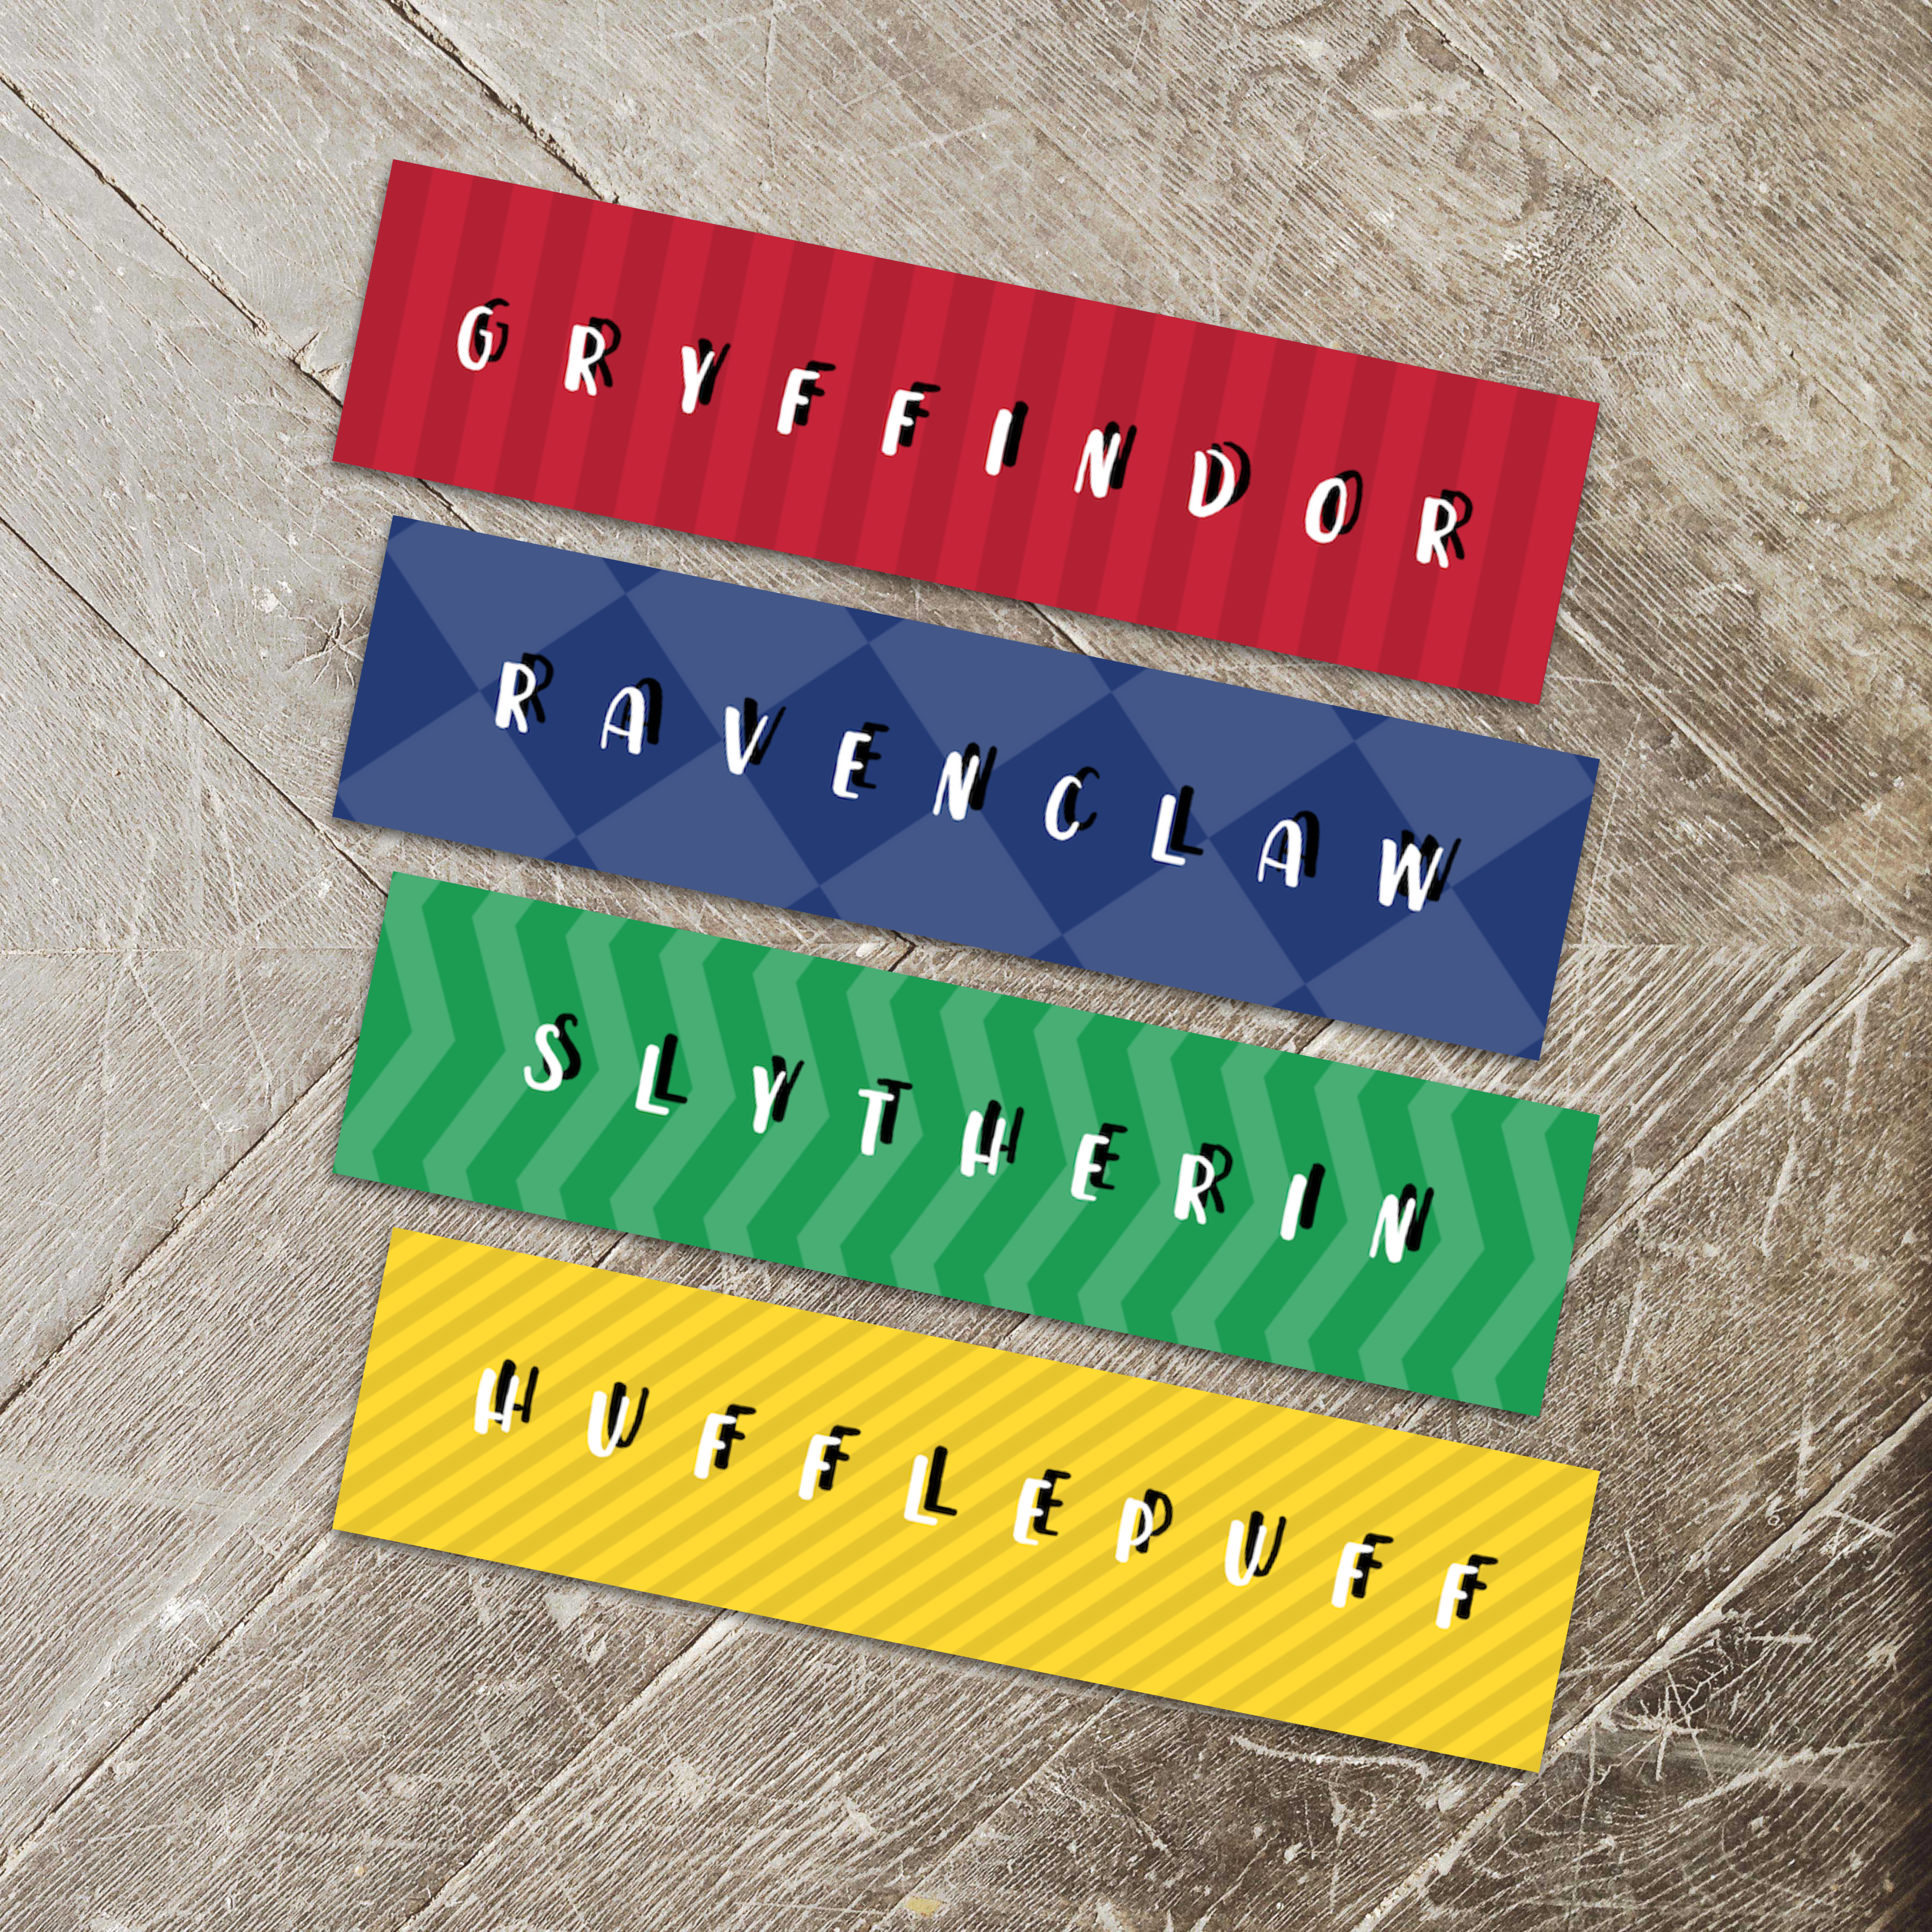 Harry Potter Simple House Bookmarks 122114-13